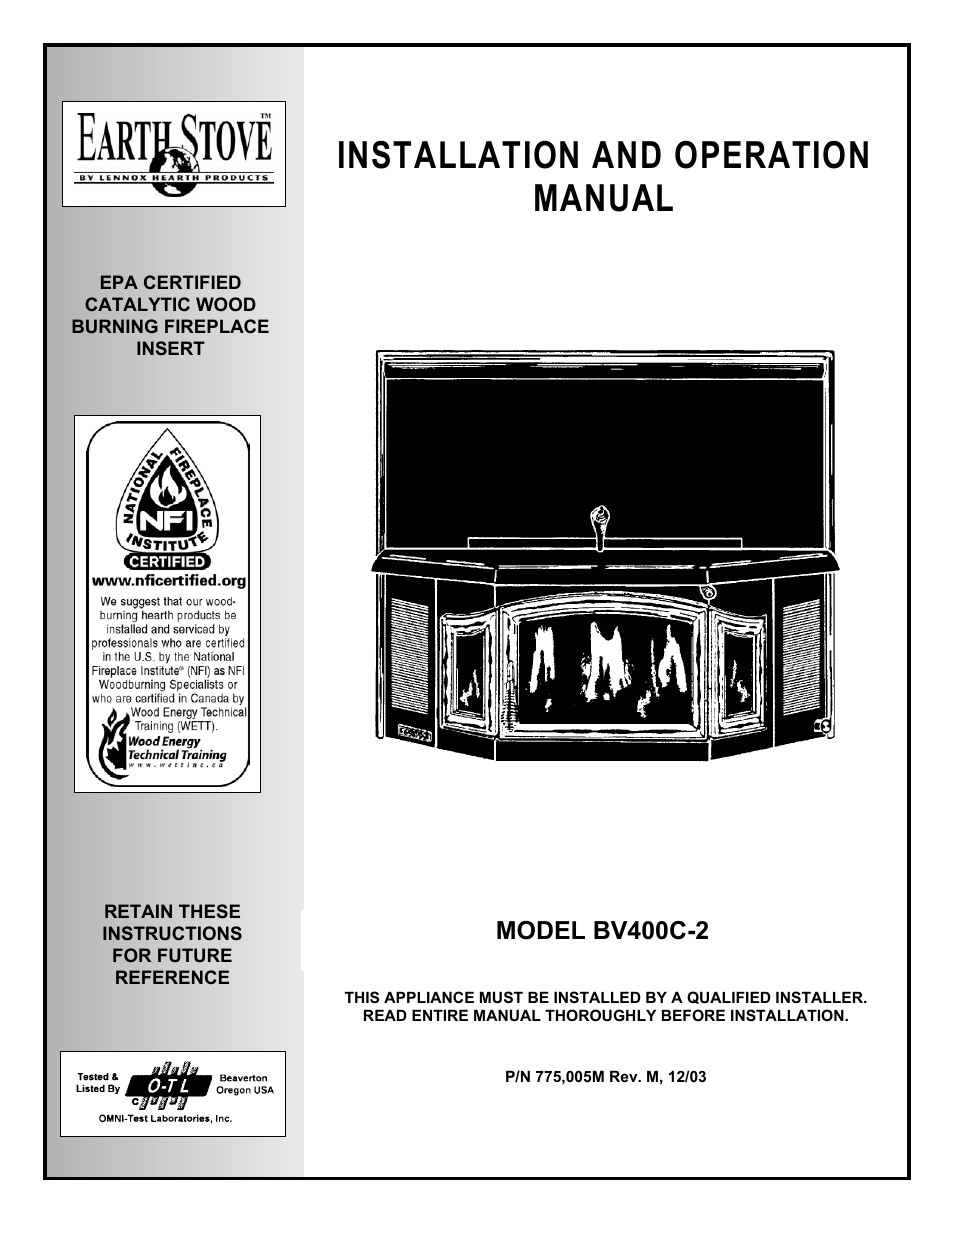 earthstone earth stove bv400c 2 user manual 28 pages